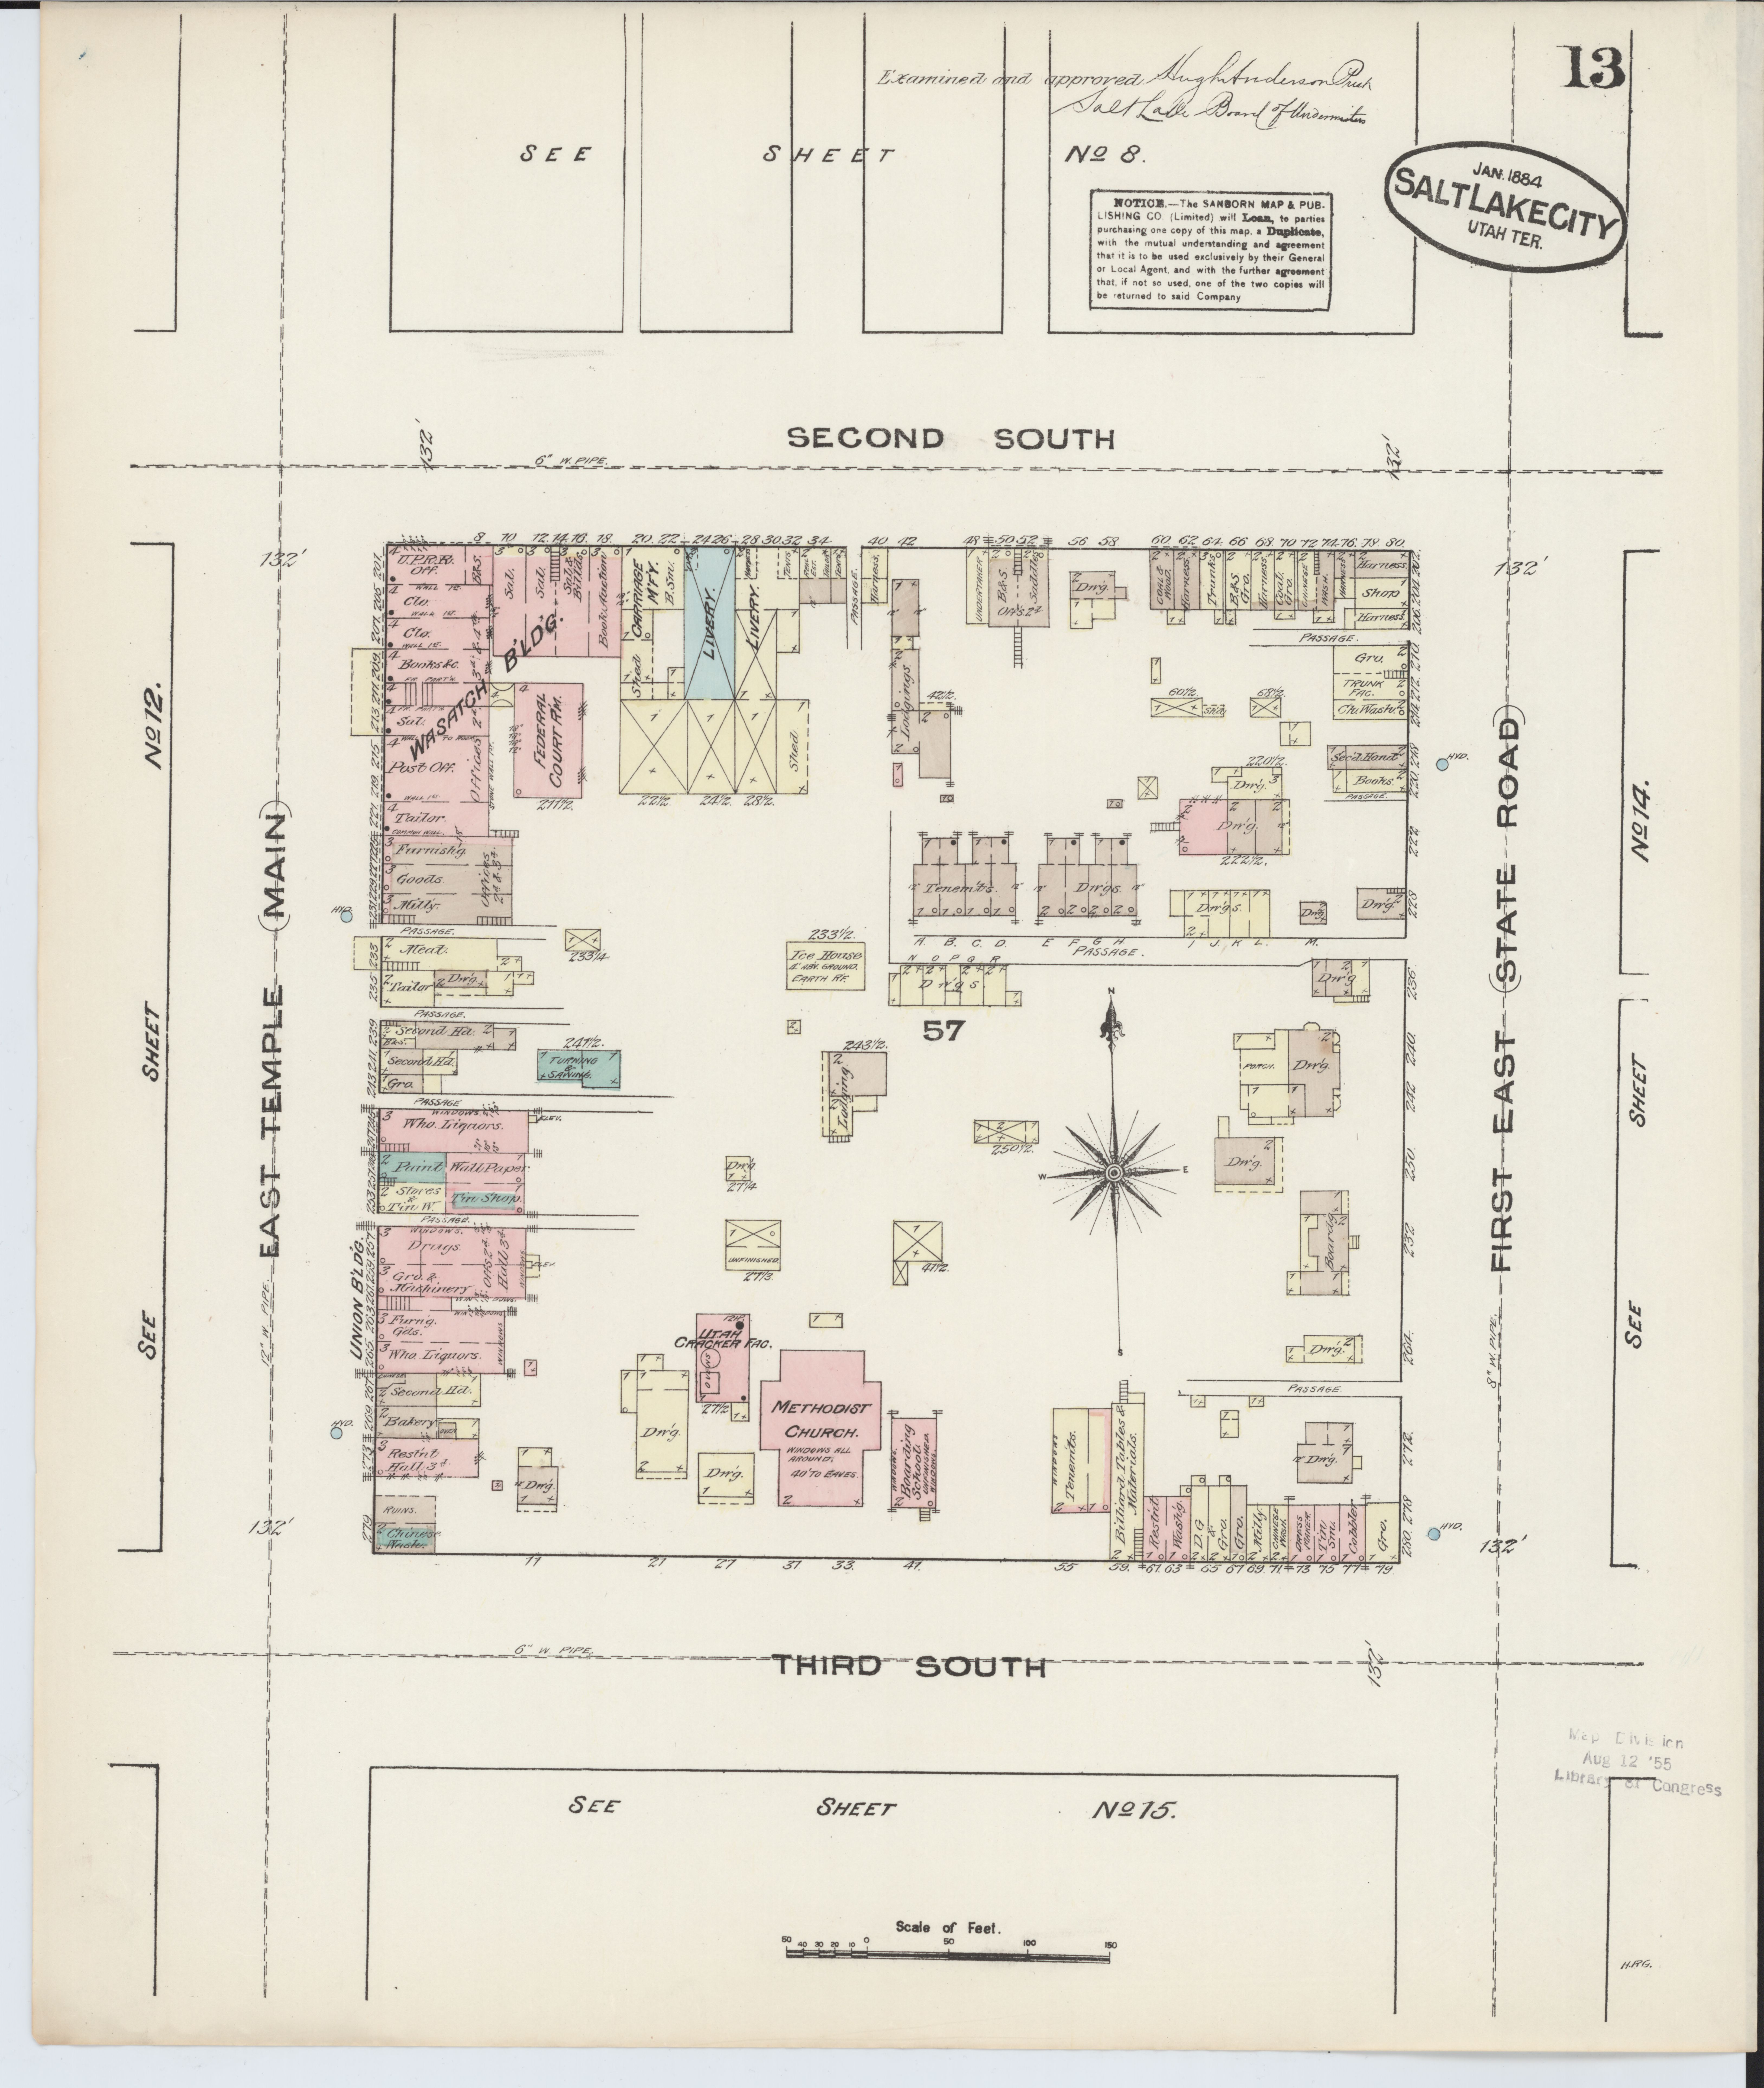 File:Sanborn Fire Insurance Map from Salt Lake City, Salt ... on woodland road map, lake county colorado map, lee county road map, salt lake aerial, albion basin road map, st. mary's county road map, pleasant grove road map, macon county road map, santa rosa county road map, logan road map, south ogden road map, salt lake florida, prince george's county road map, brigham city road map, ballpark road map, springville road map, oakland road map, college of lake county il map, wichita county road map, salt lake nm,